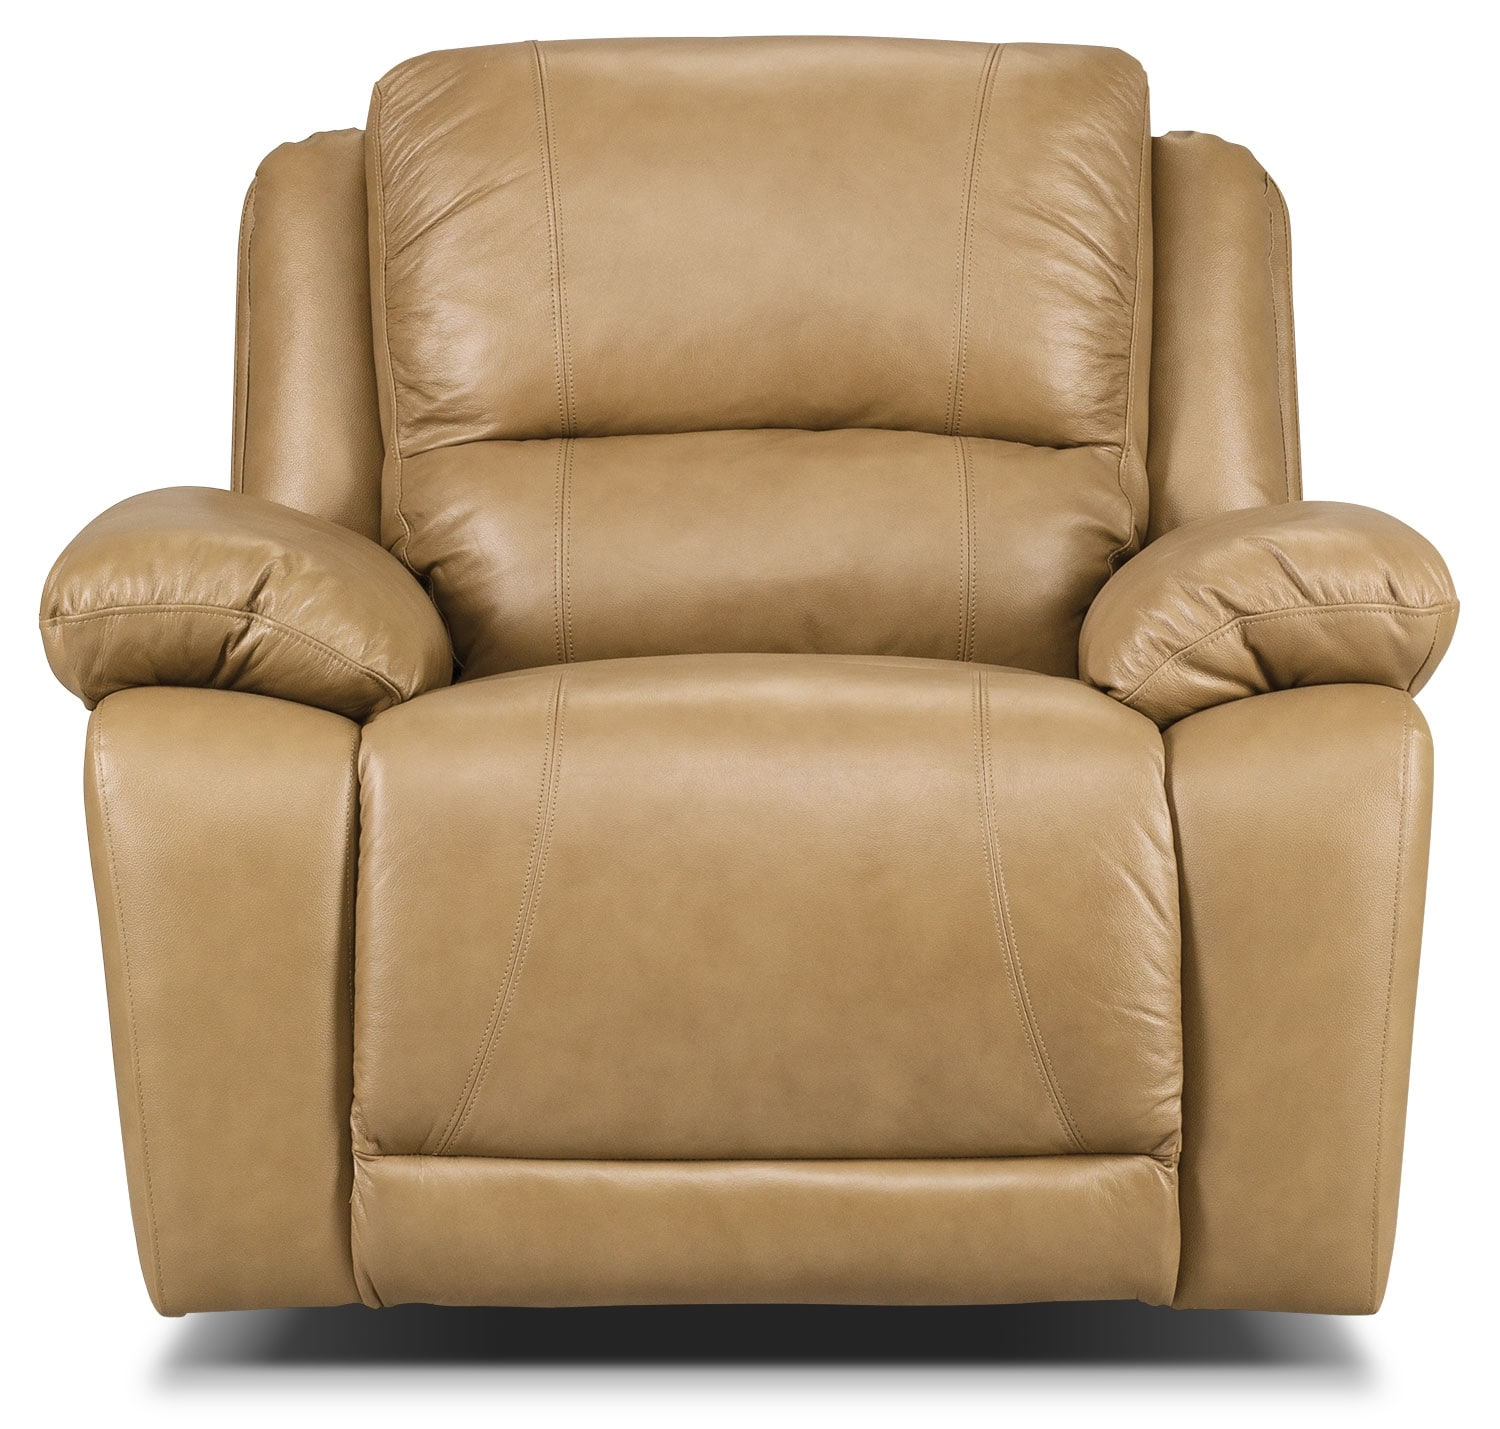 Marco Genuine Leather Power Reclining Chair - Toffee